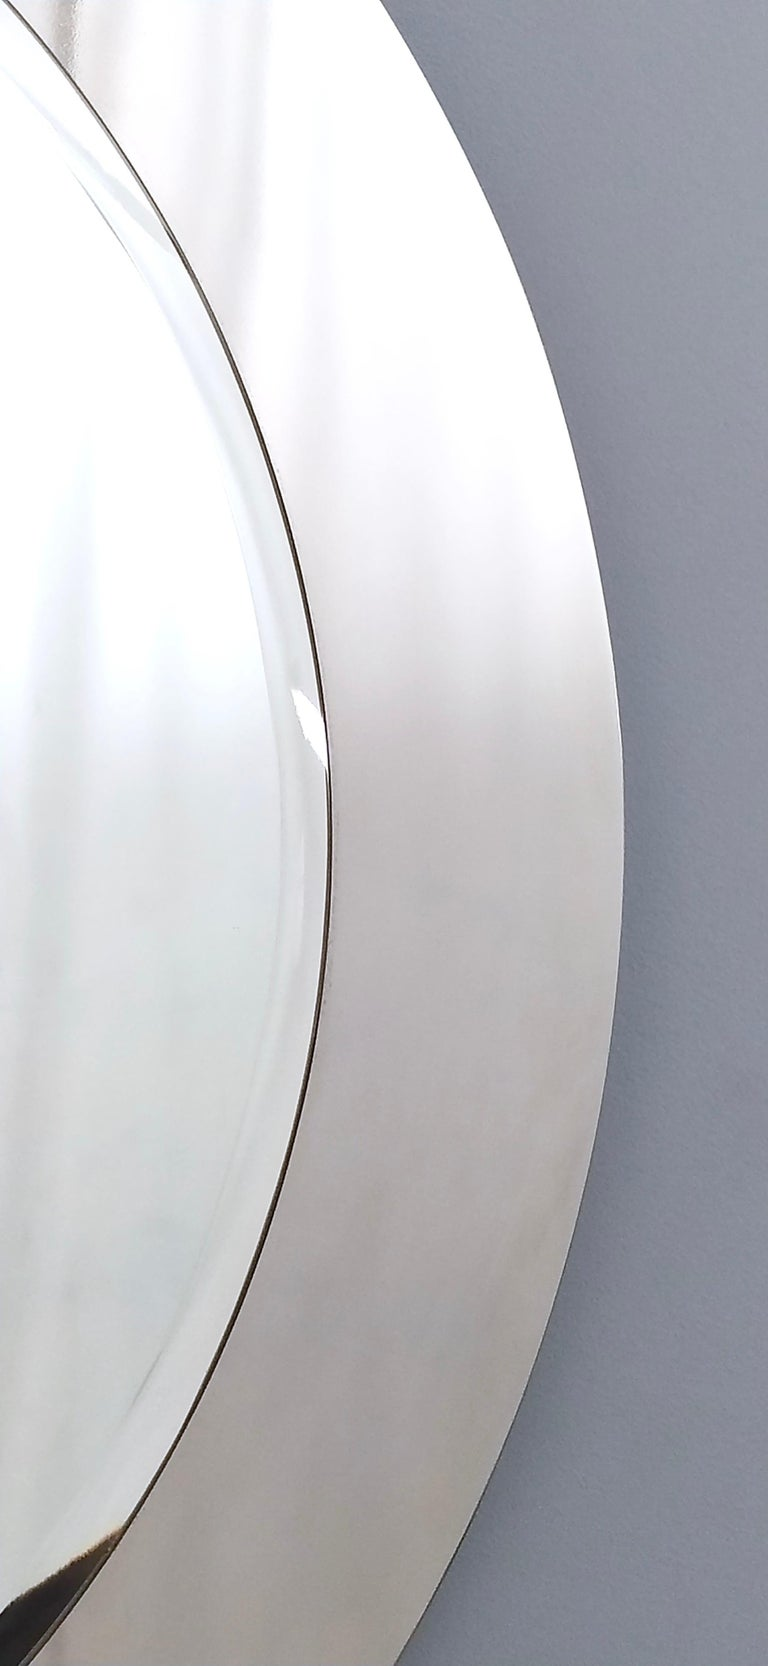 Midcentury Round Wall Mirror with Mirrored Steel Frame, Italy, 1970s For Sale 4